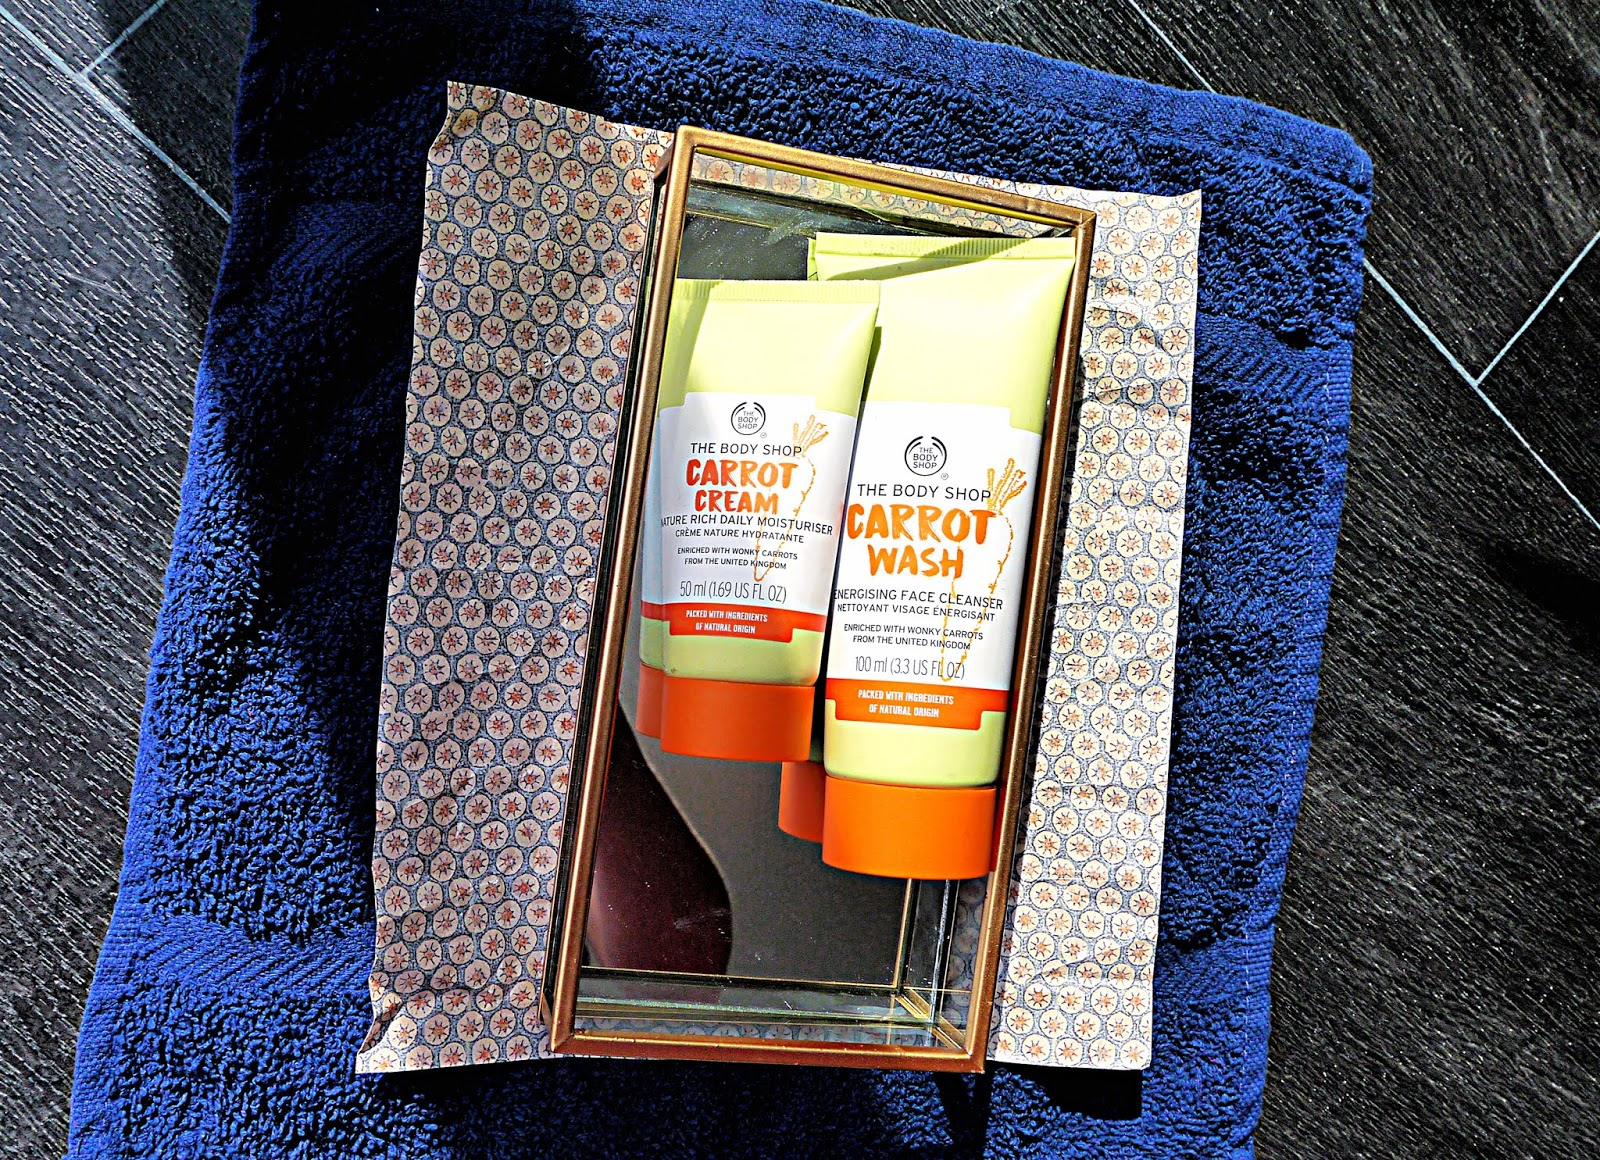 The Carrot Skincare Range From The Body Shop // Cruelty Free, Vegan Beauty